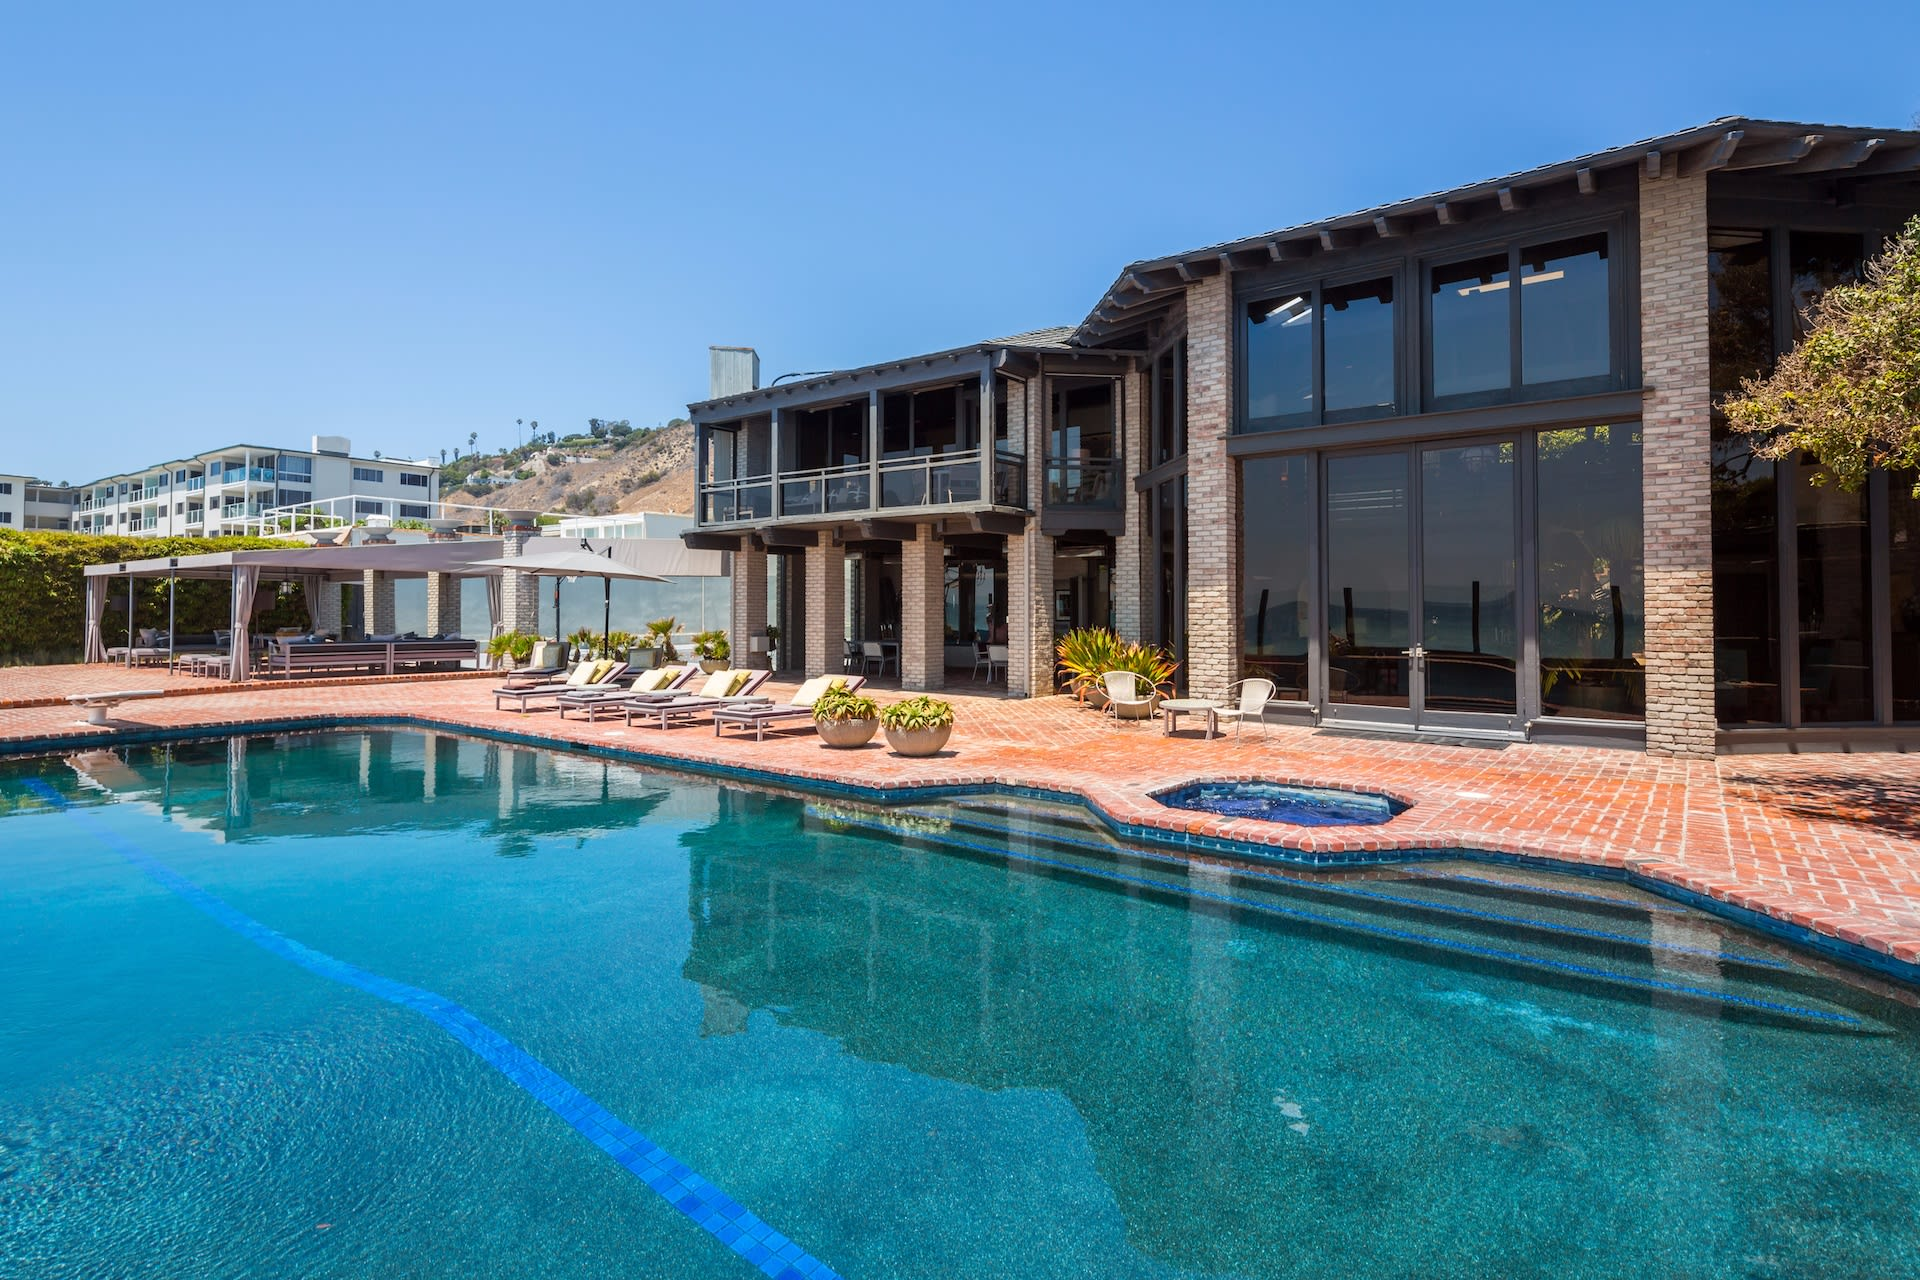 Single Family Home for Sale at 22506 Pacific Coast Hwy 22506 Pacific Coast Hwy Malibu, California,90265 United States